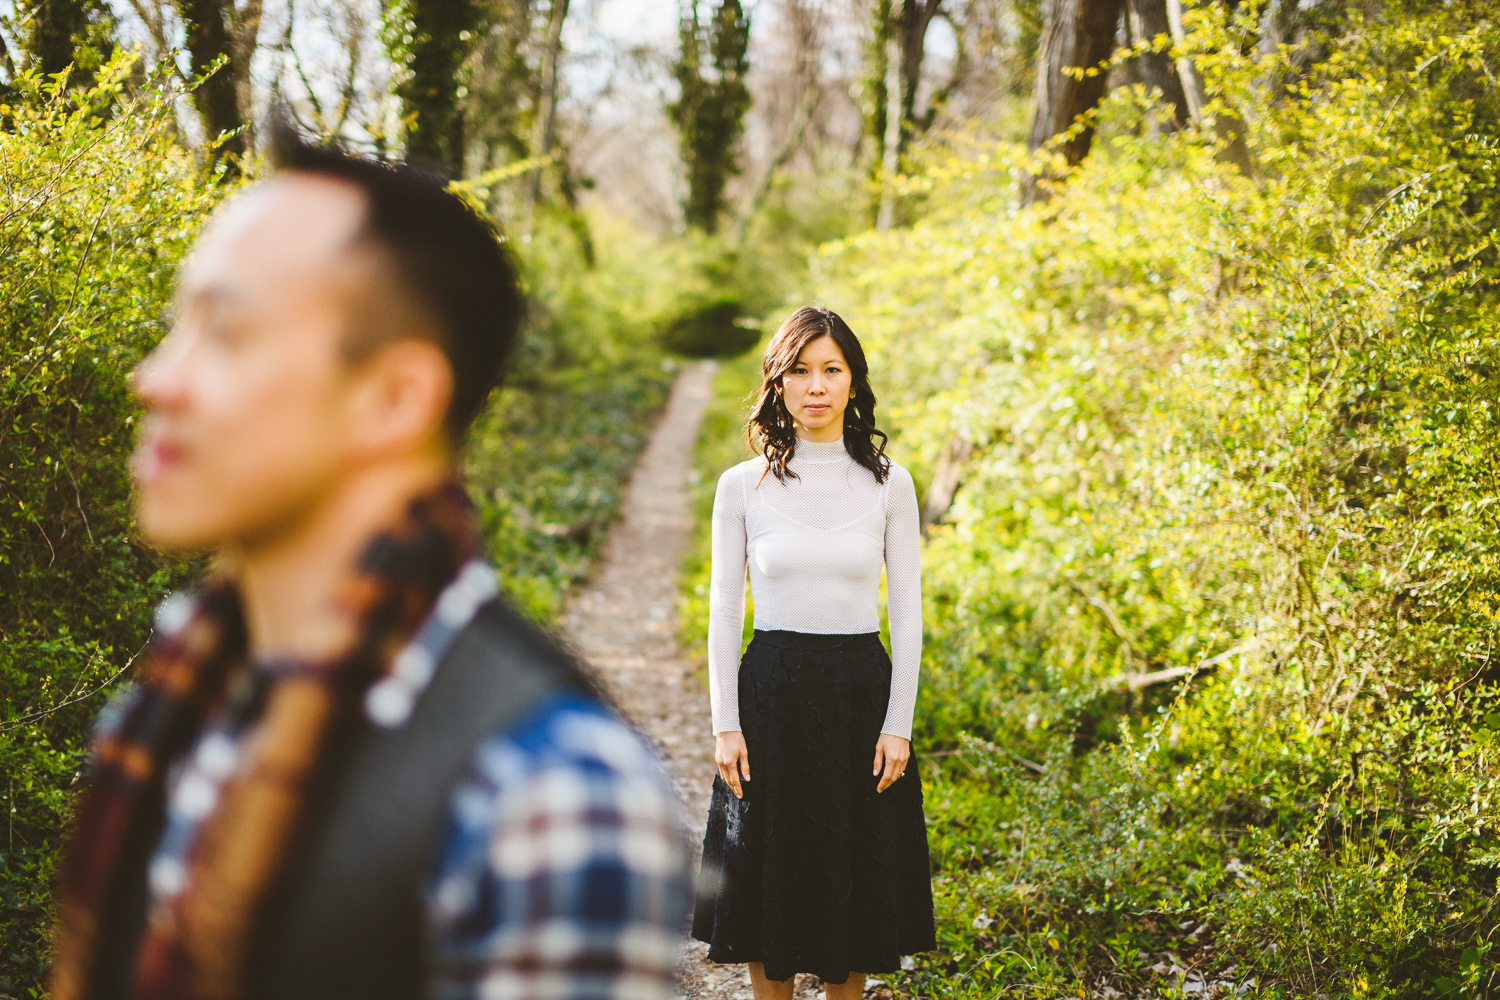 008 - woman looking into camera with man out of focus in foreground and a path leading off in the distance.jpg